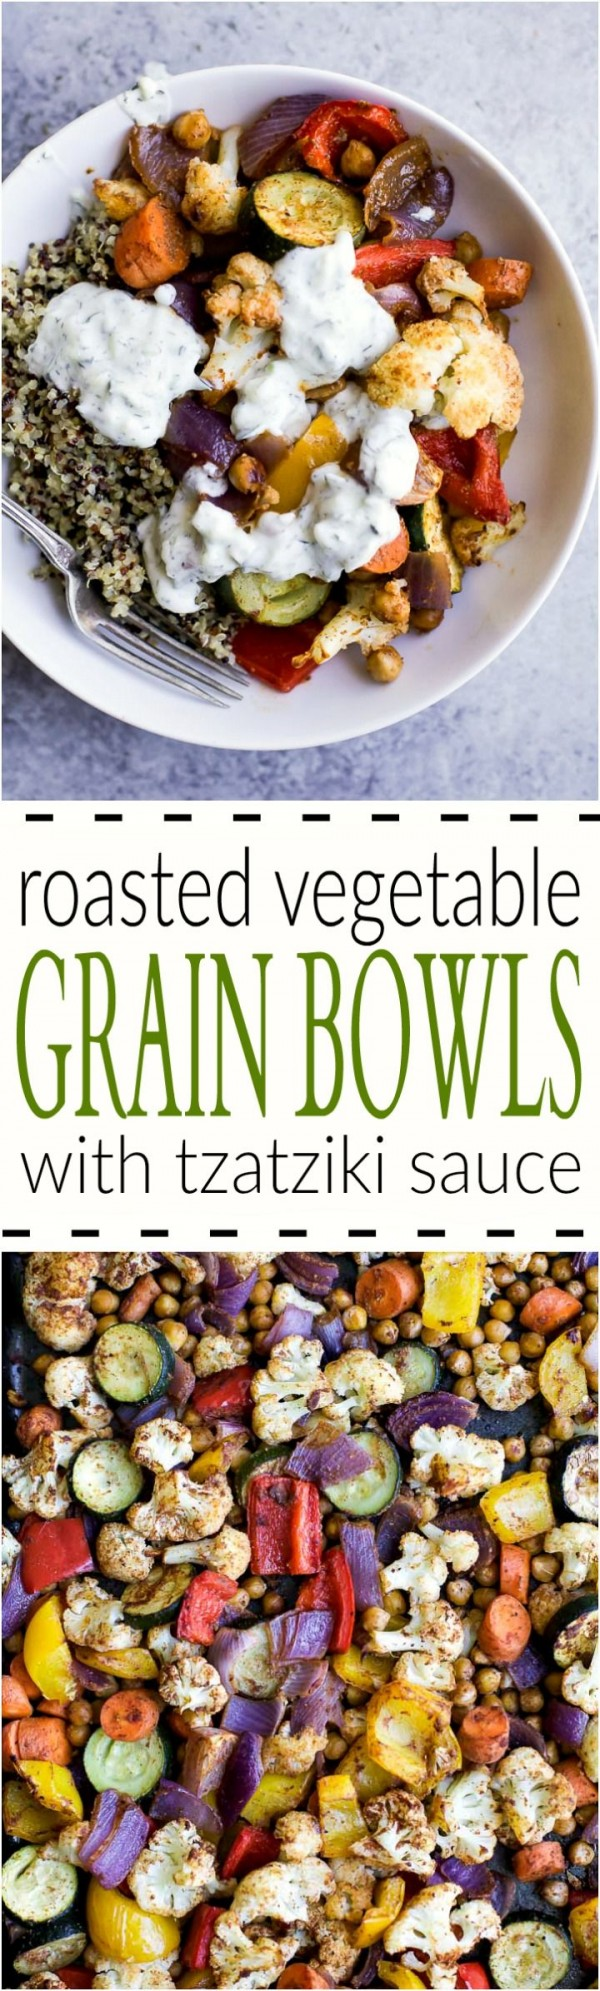 50 Most Delicious and Healthy Vegetarian Recipes - Check out this recipe for roasted vegetable grain bowls. Yummy! #RecipeIdeas @recipes_to_go